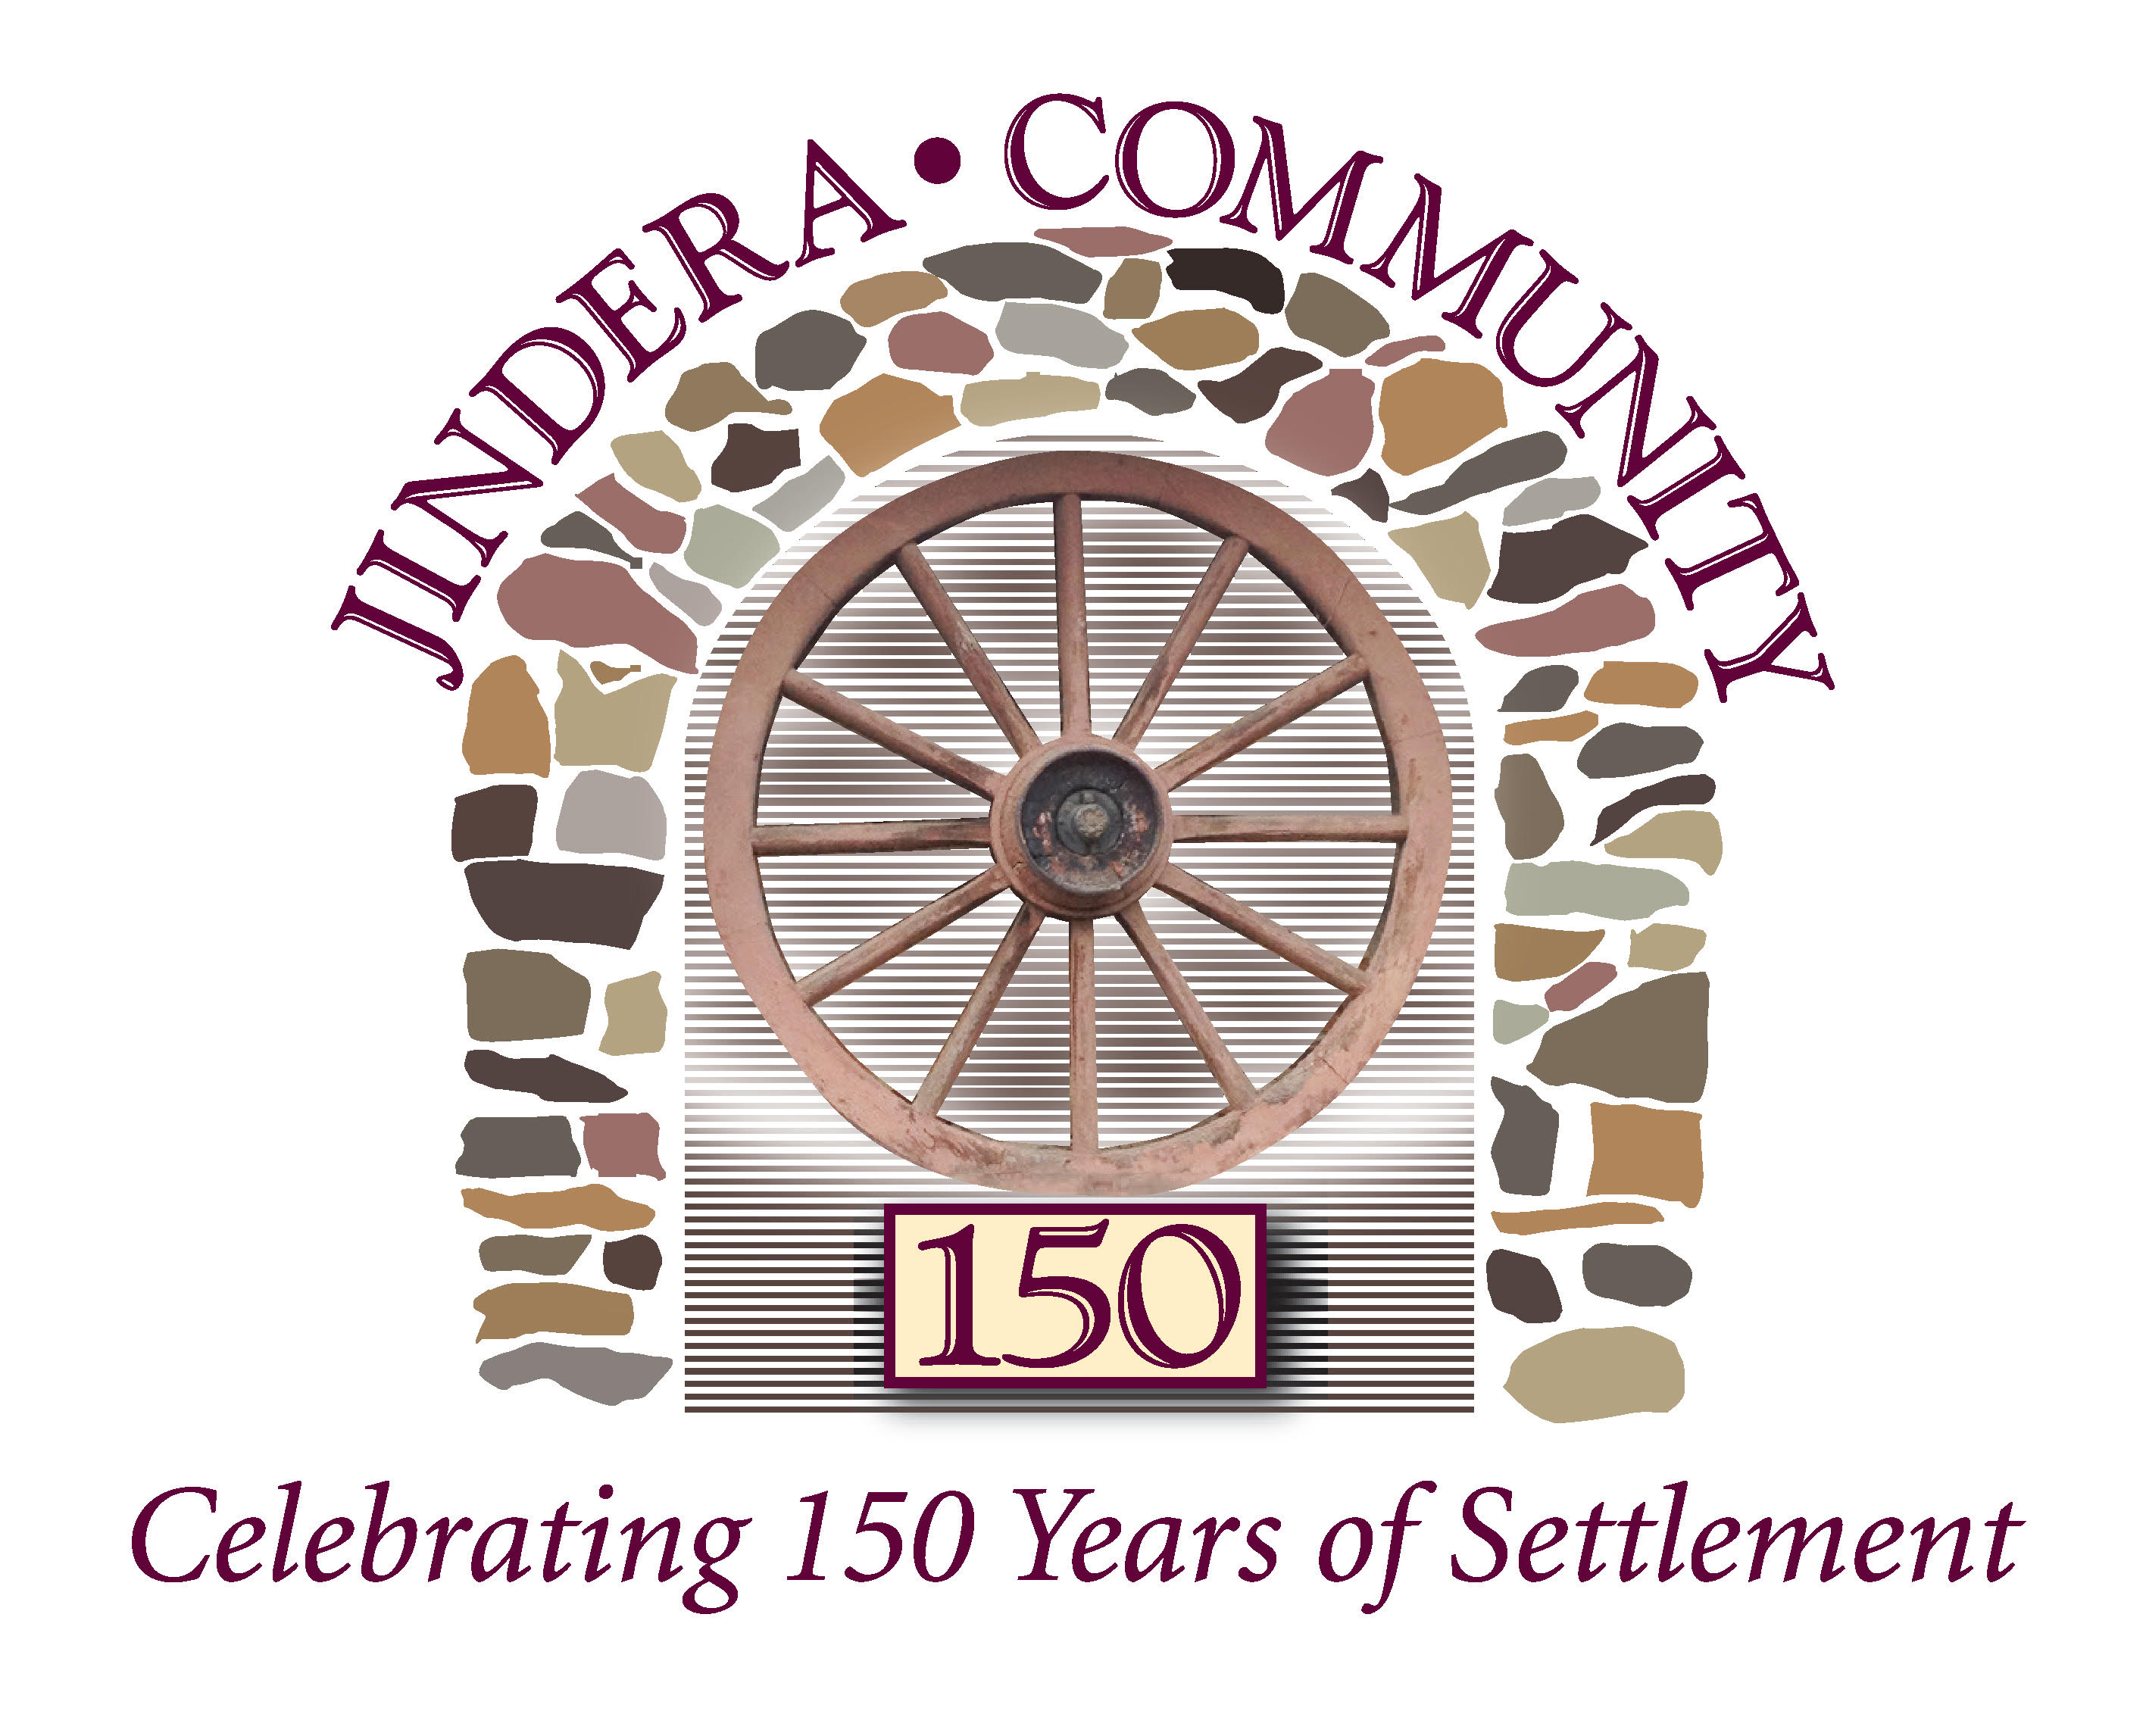 Celebrating 150 Years of Township Settlement